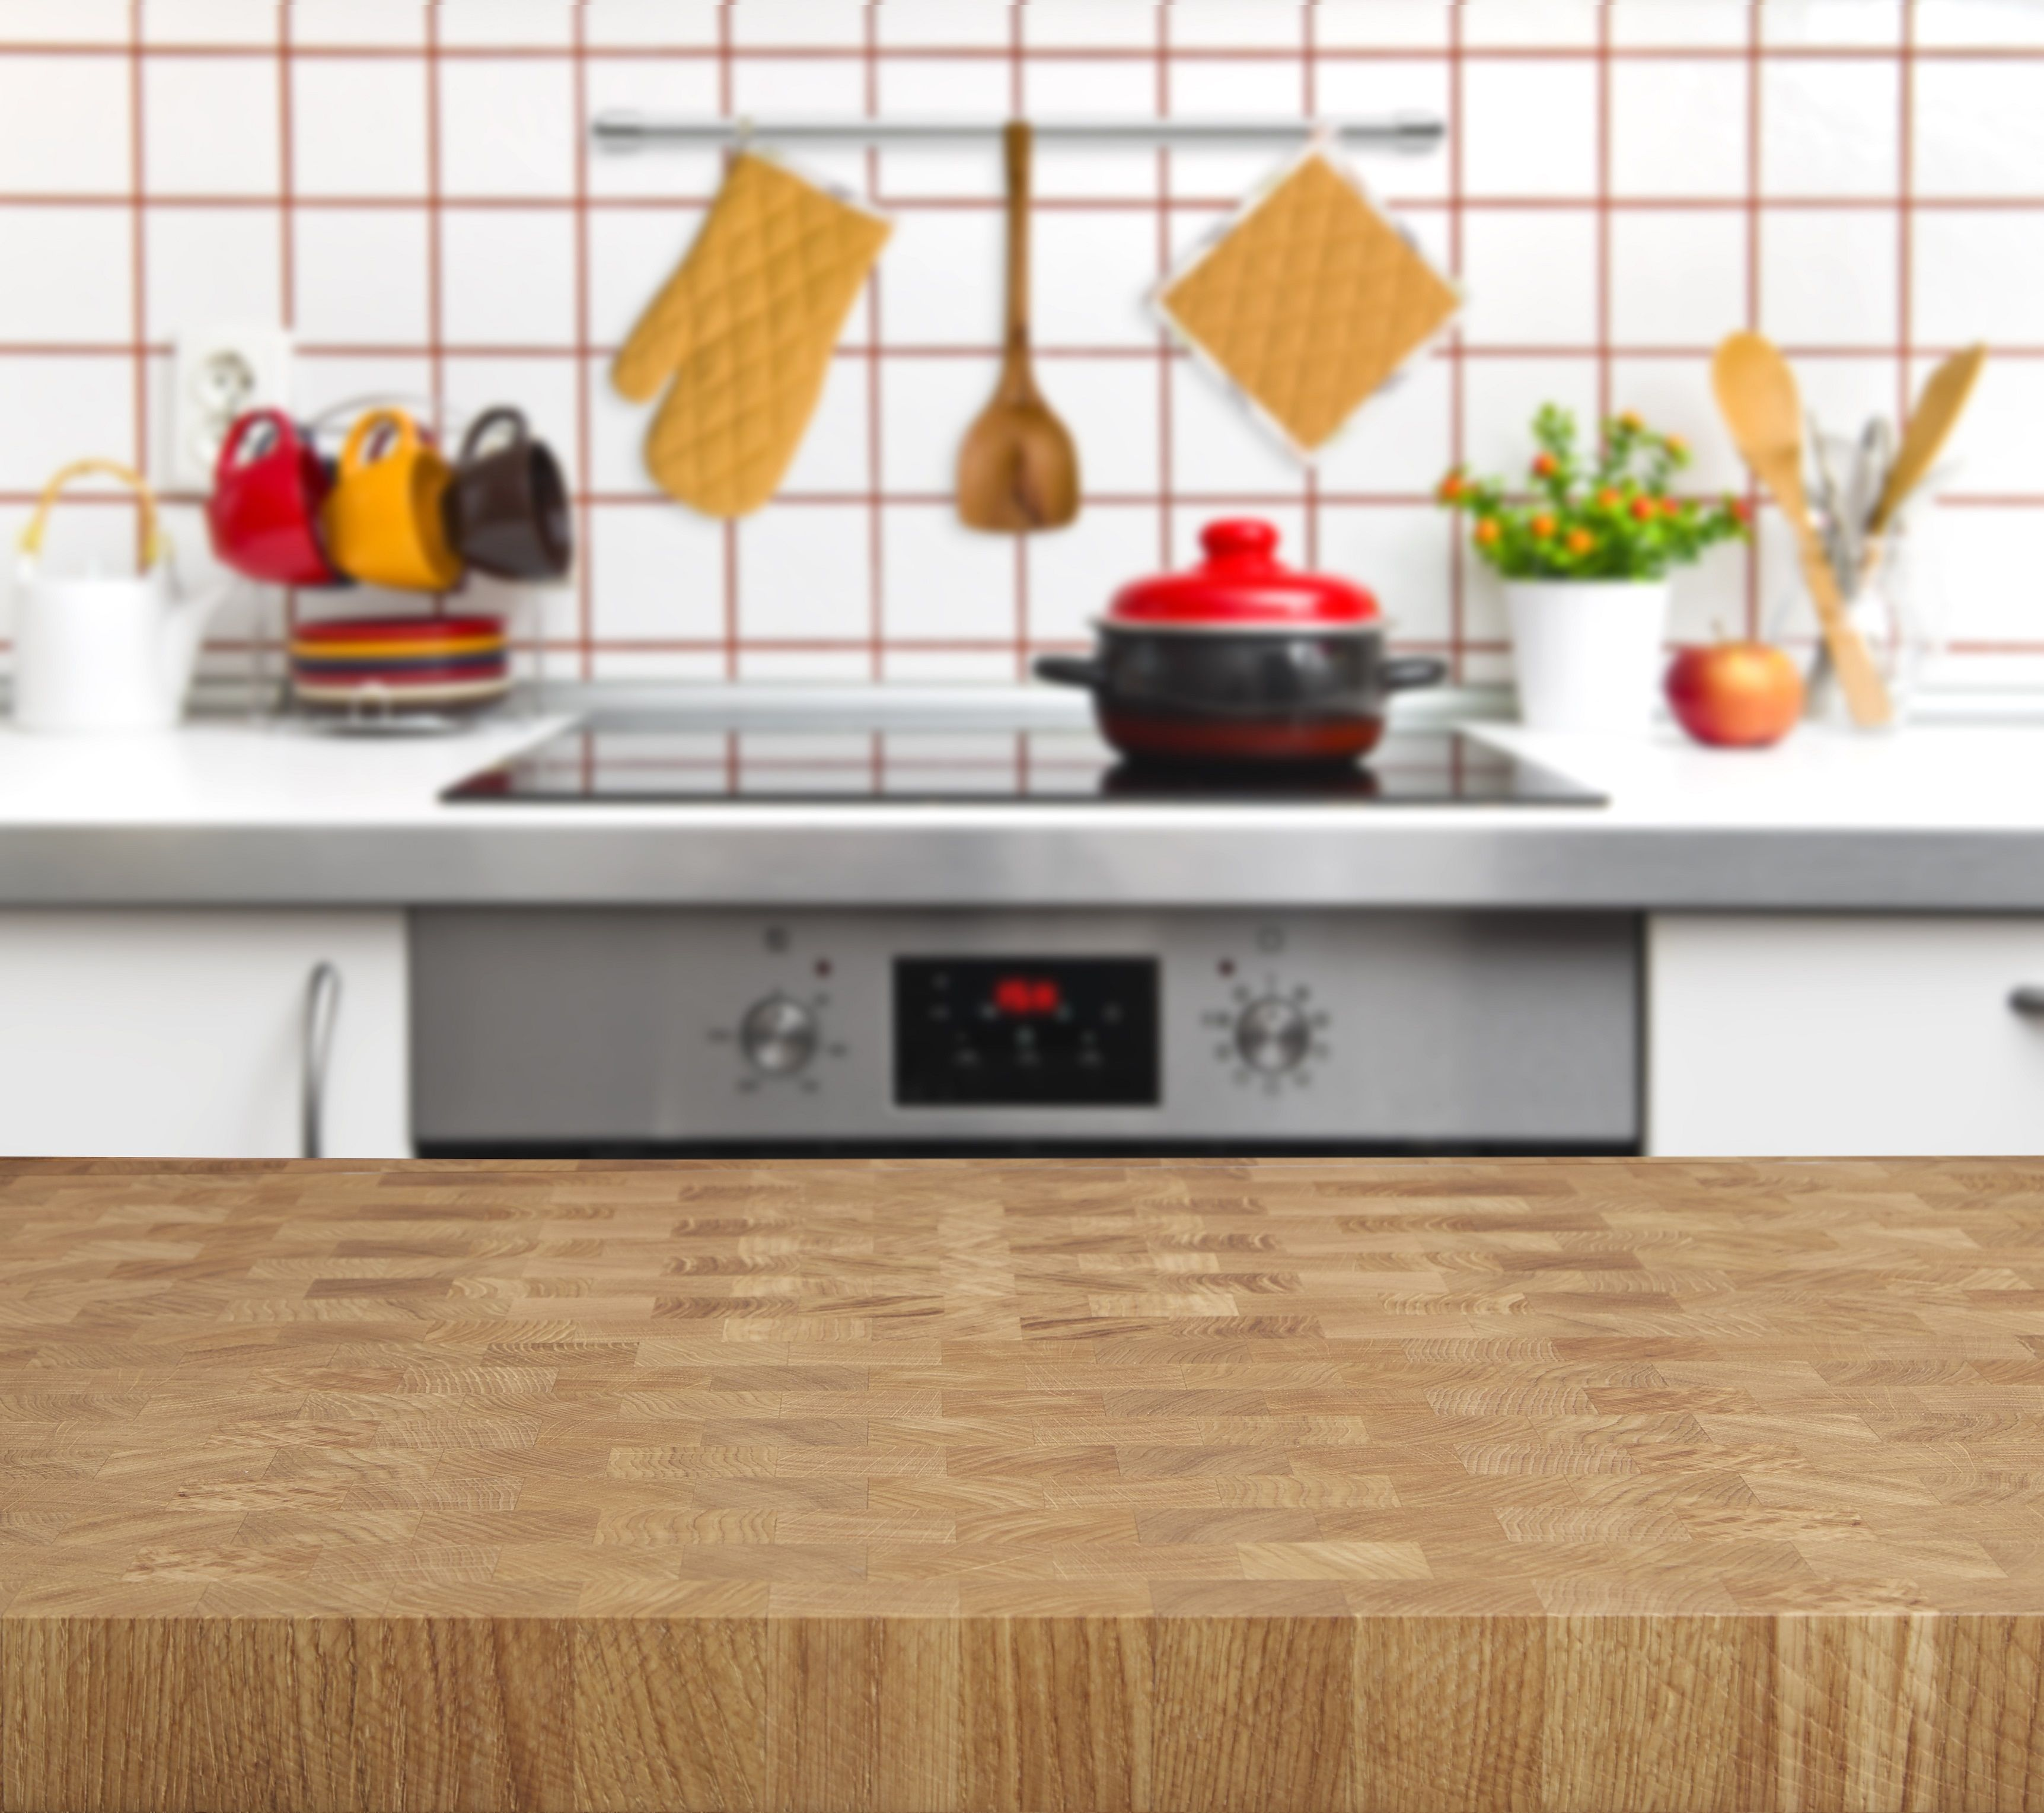 Tuscan worksurfaces butcher block kitchen background for To do board for kitchen